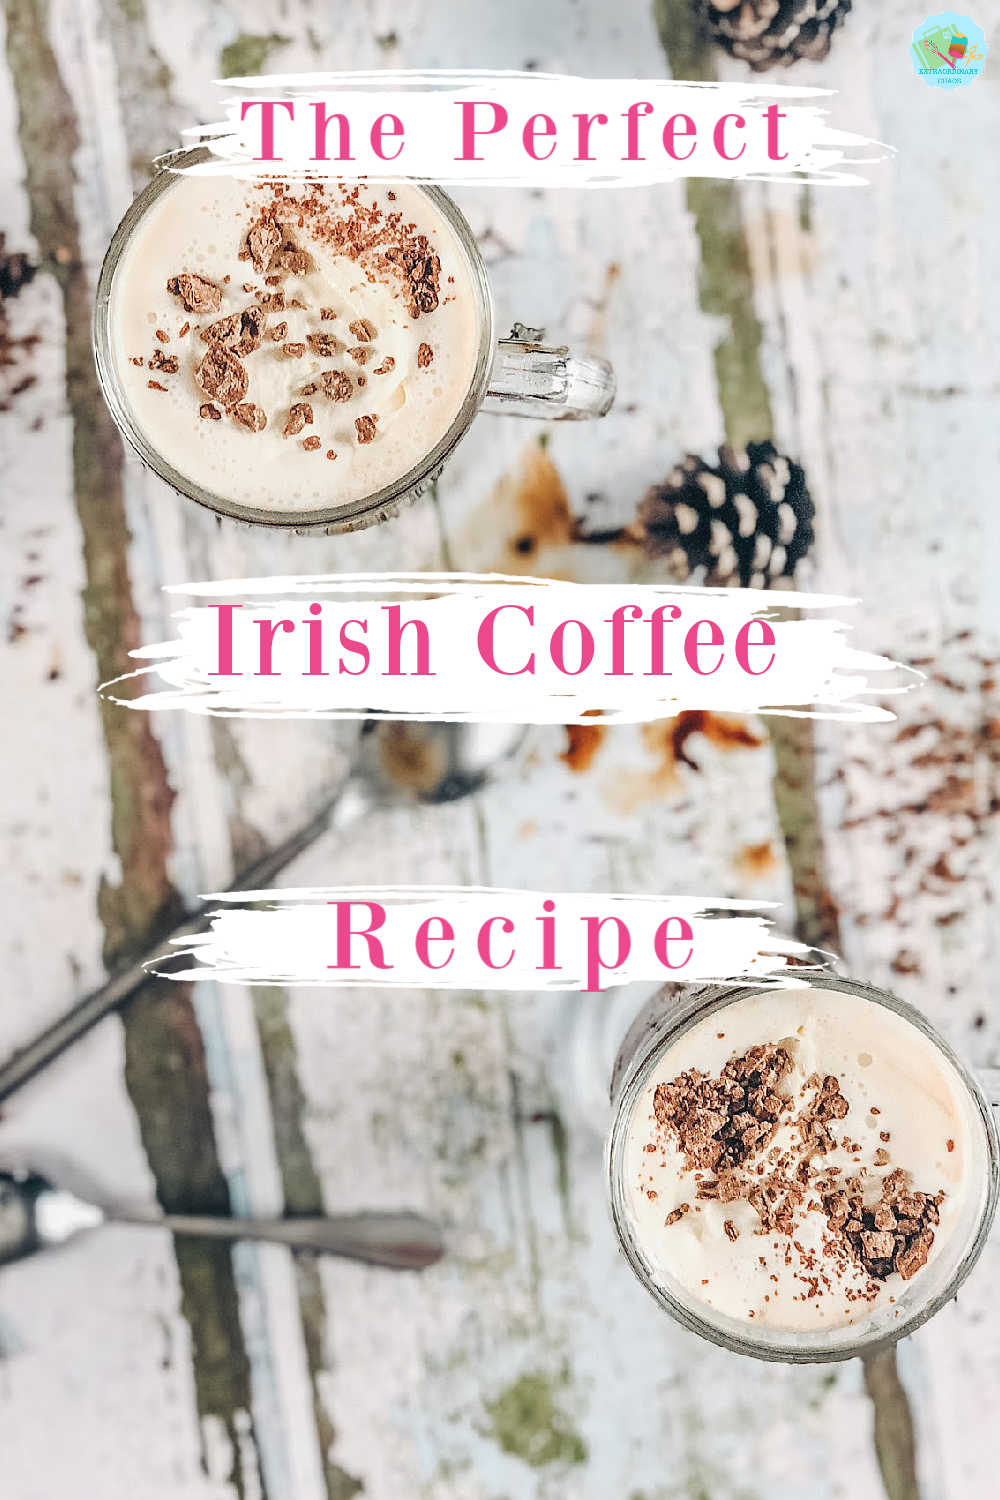 The perfect Irish coffee Recipe for dinner parties and winter cocktails with coffee and whisky